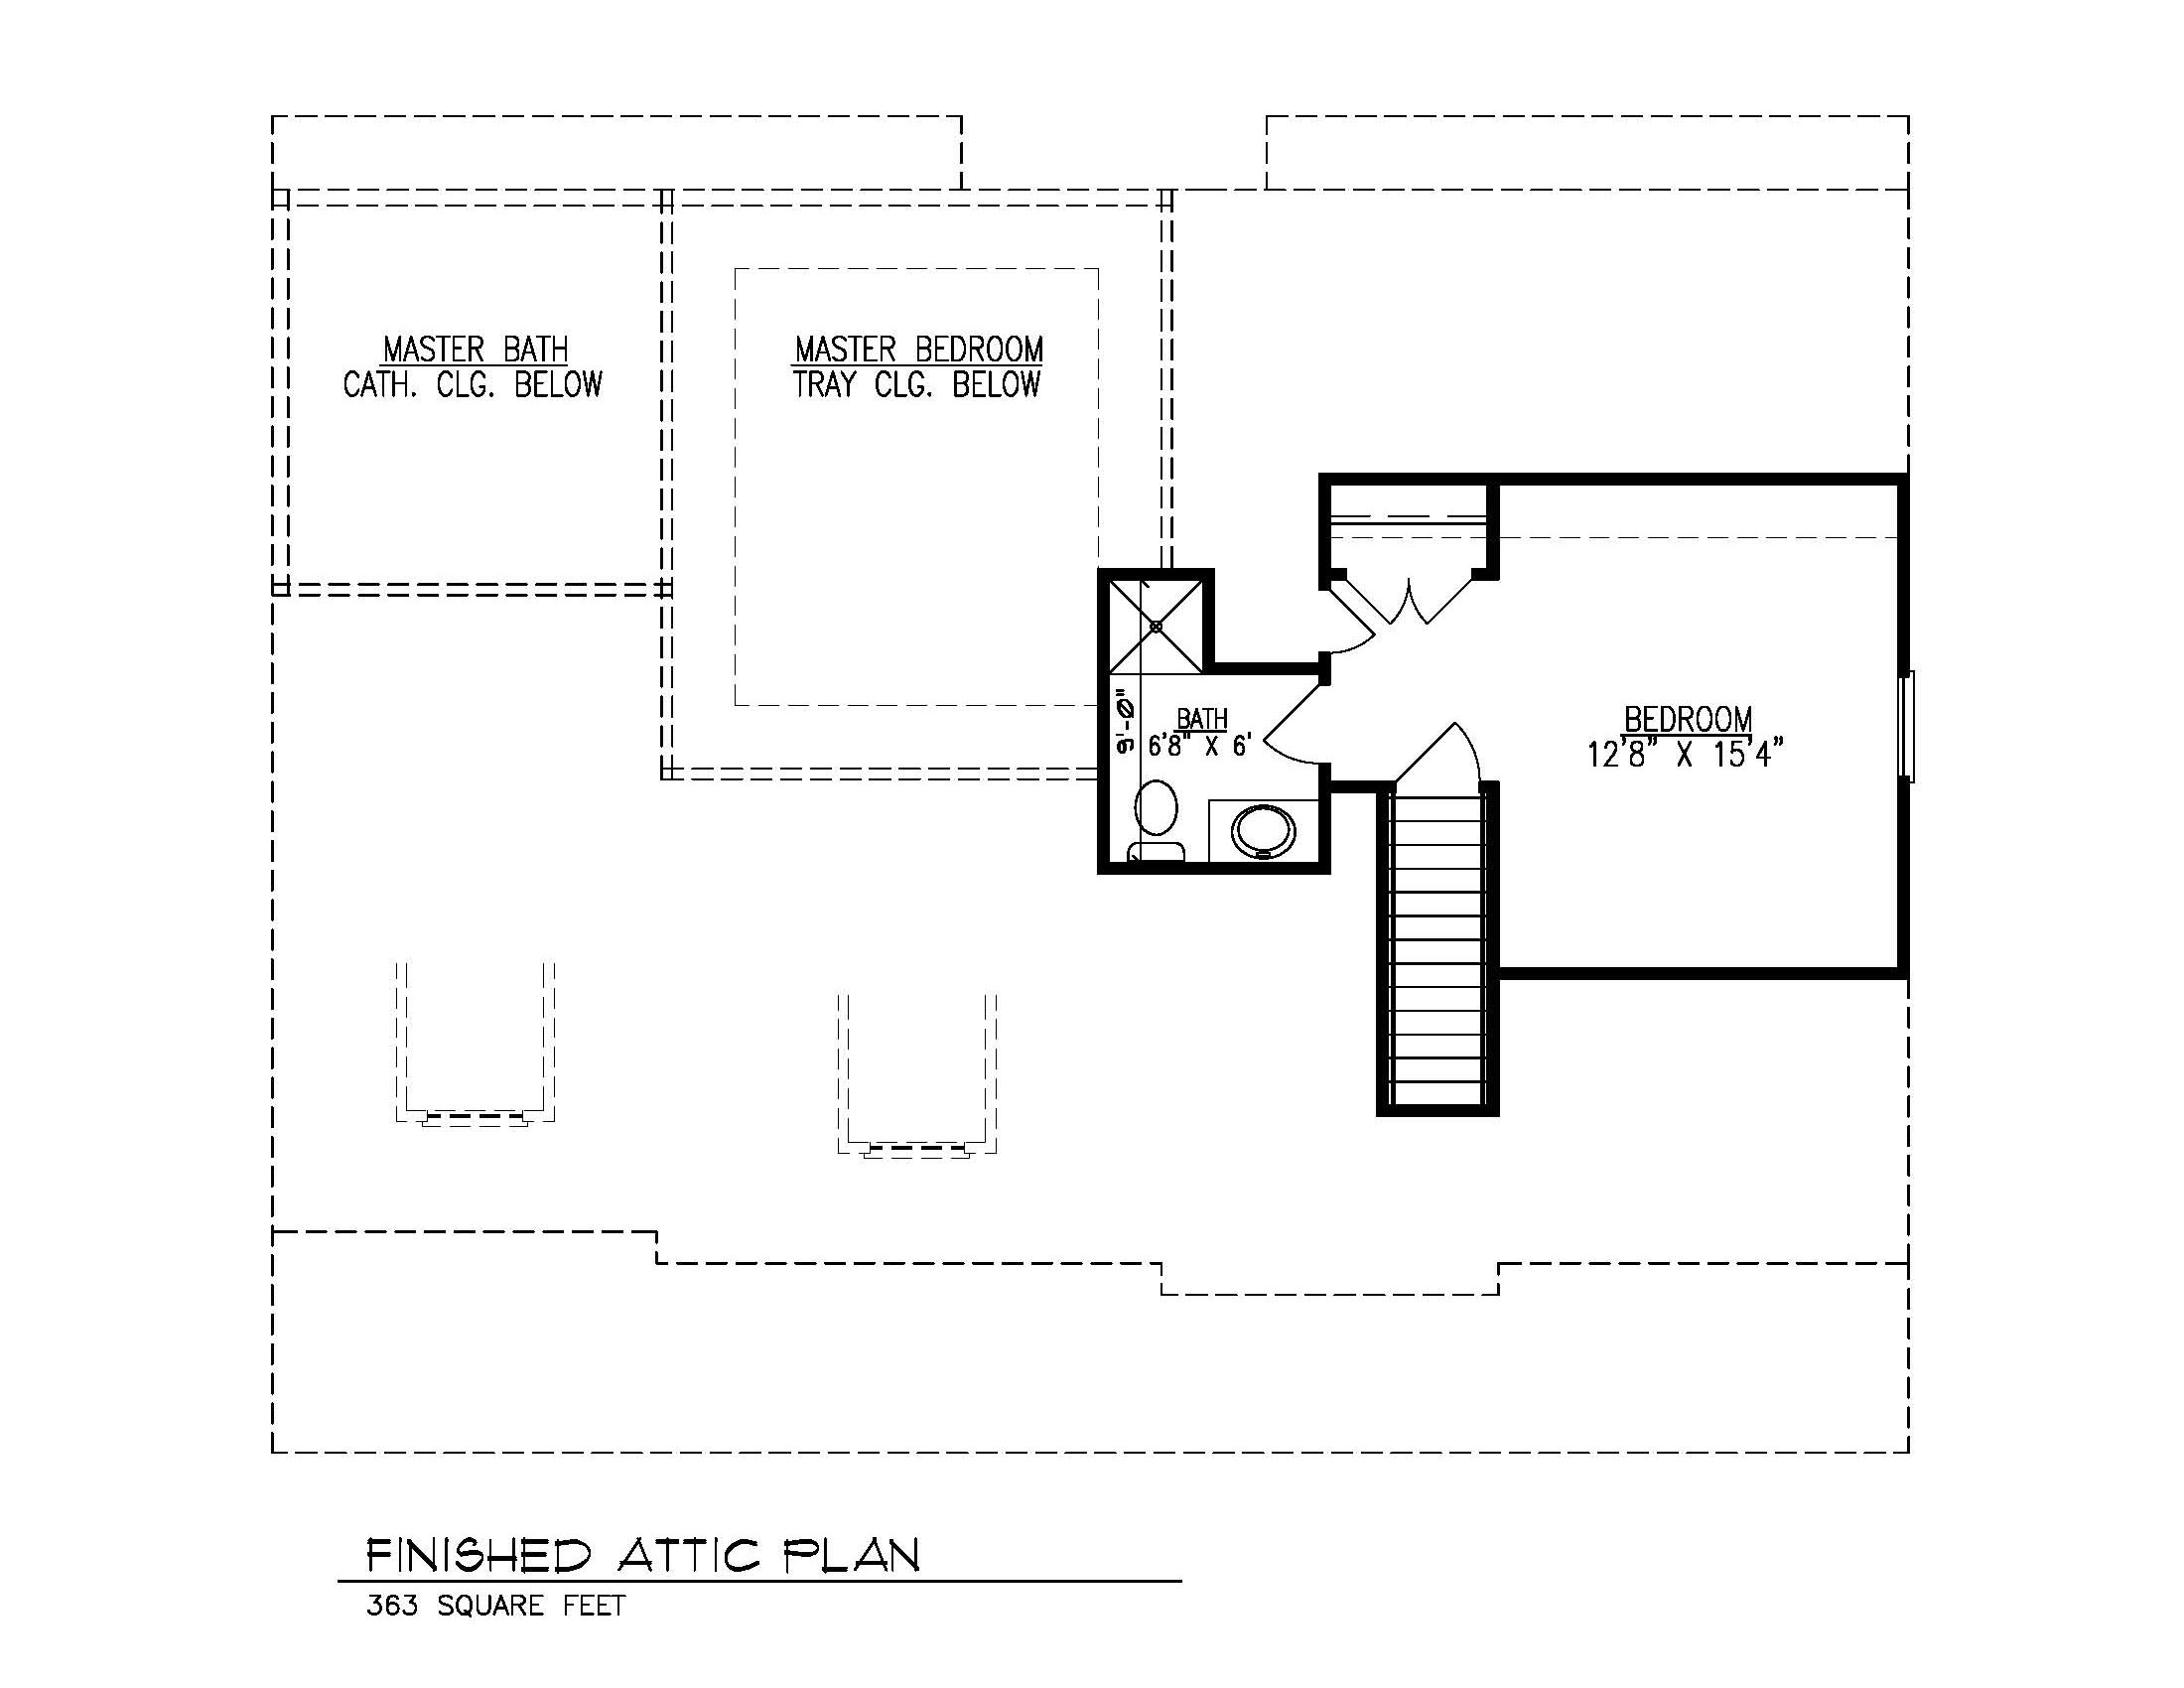 Finished Attic Floor Plan